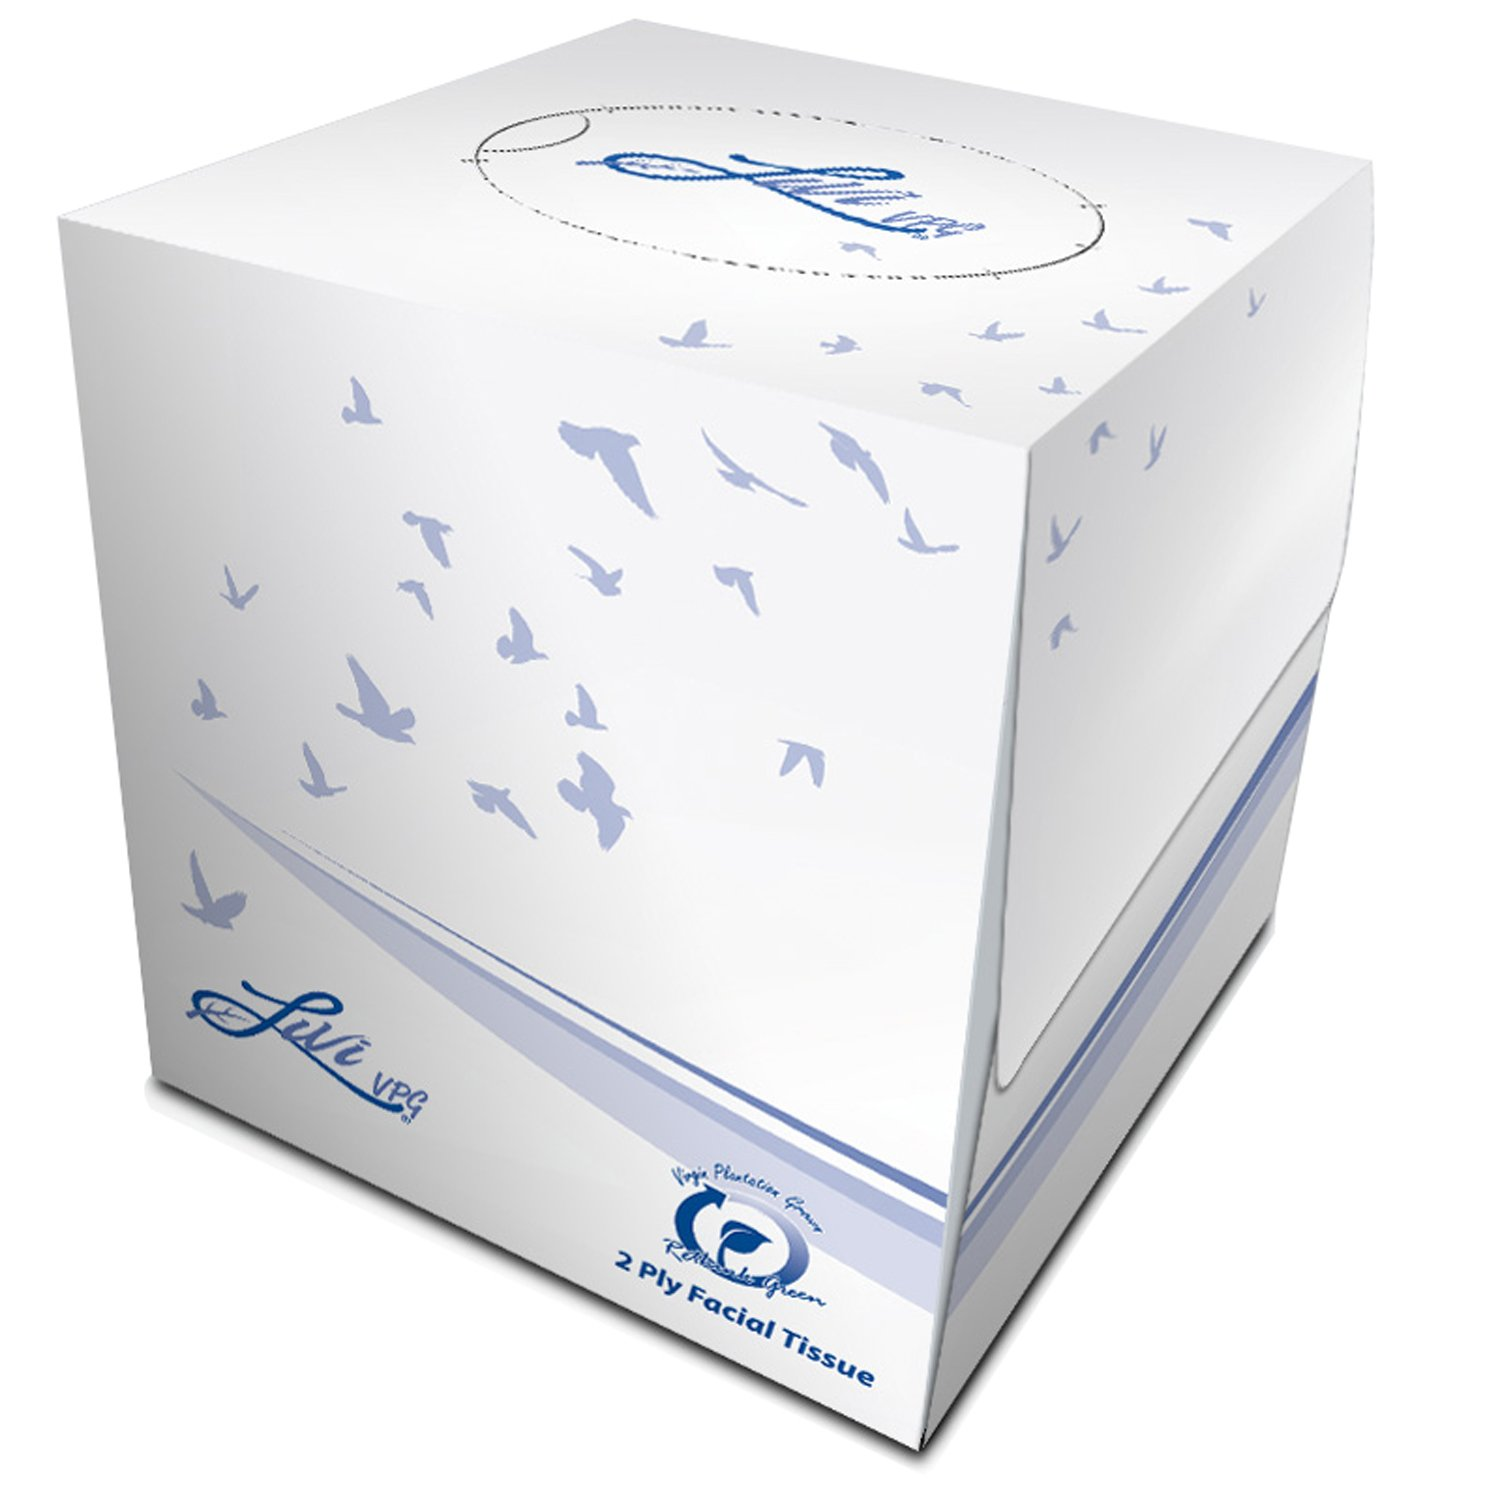 Solaris Paper 11516 Livi VPG Cube Box Facial Tissue, 2 ply, 8.37'' x 8.07'', Plain Emboss, White (Pack of 36)